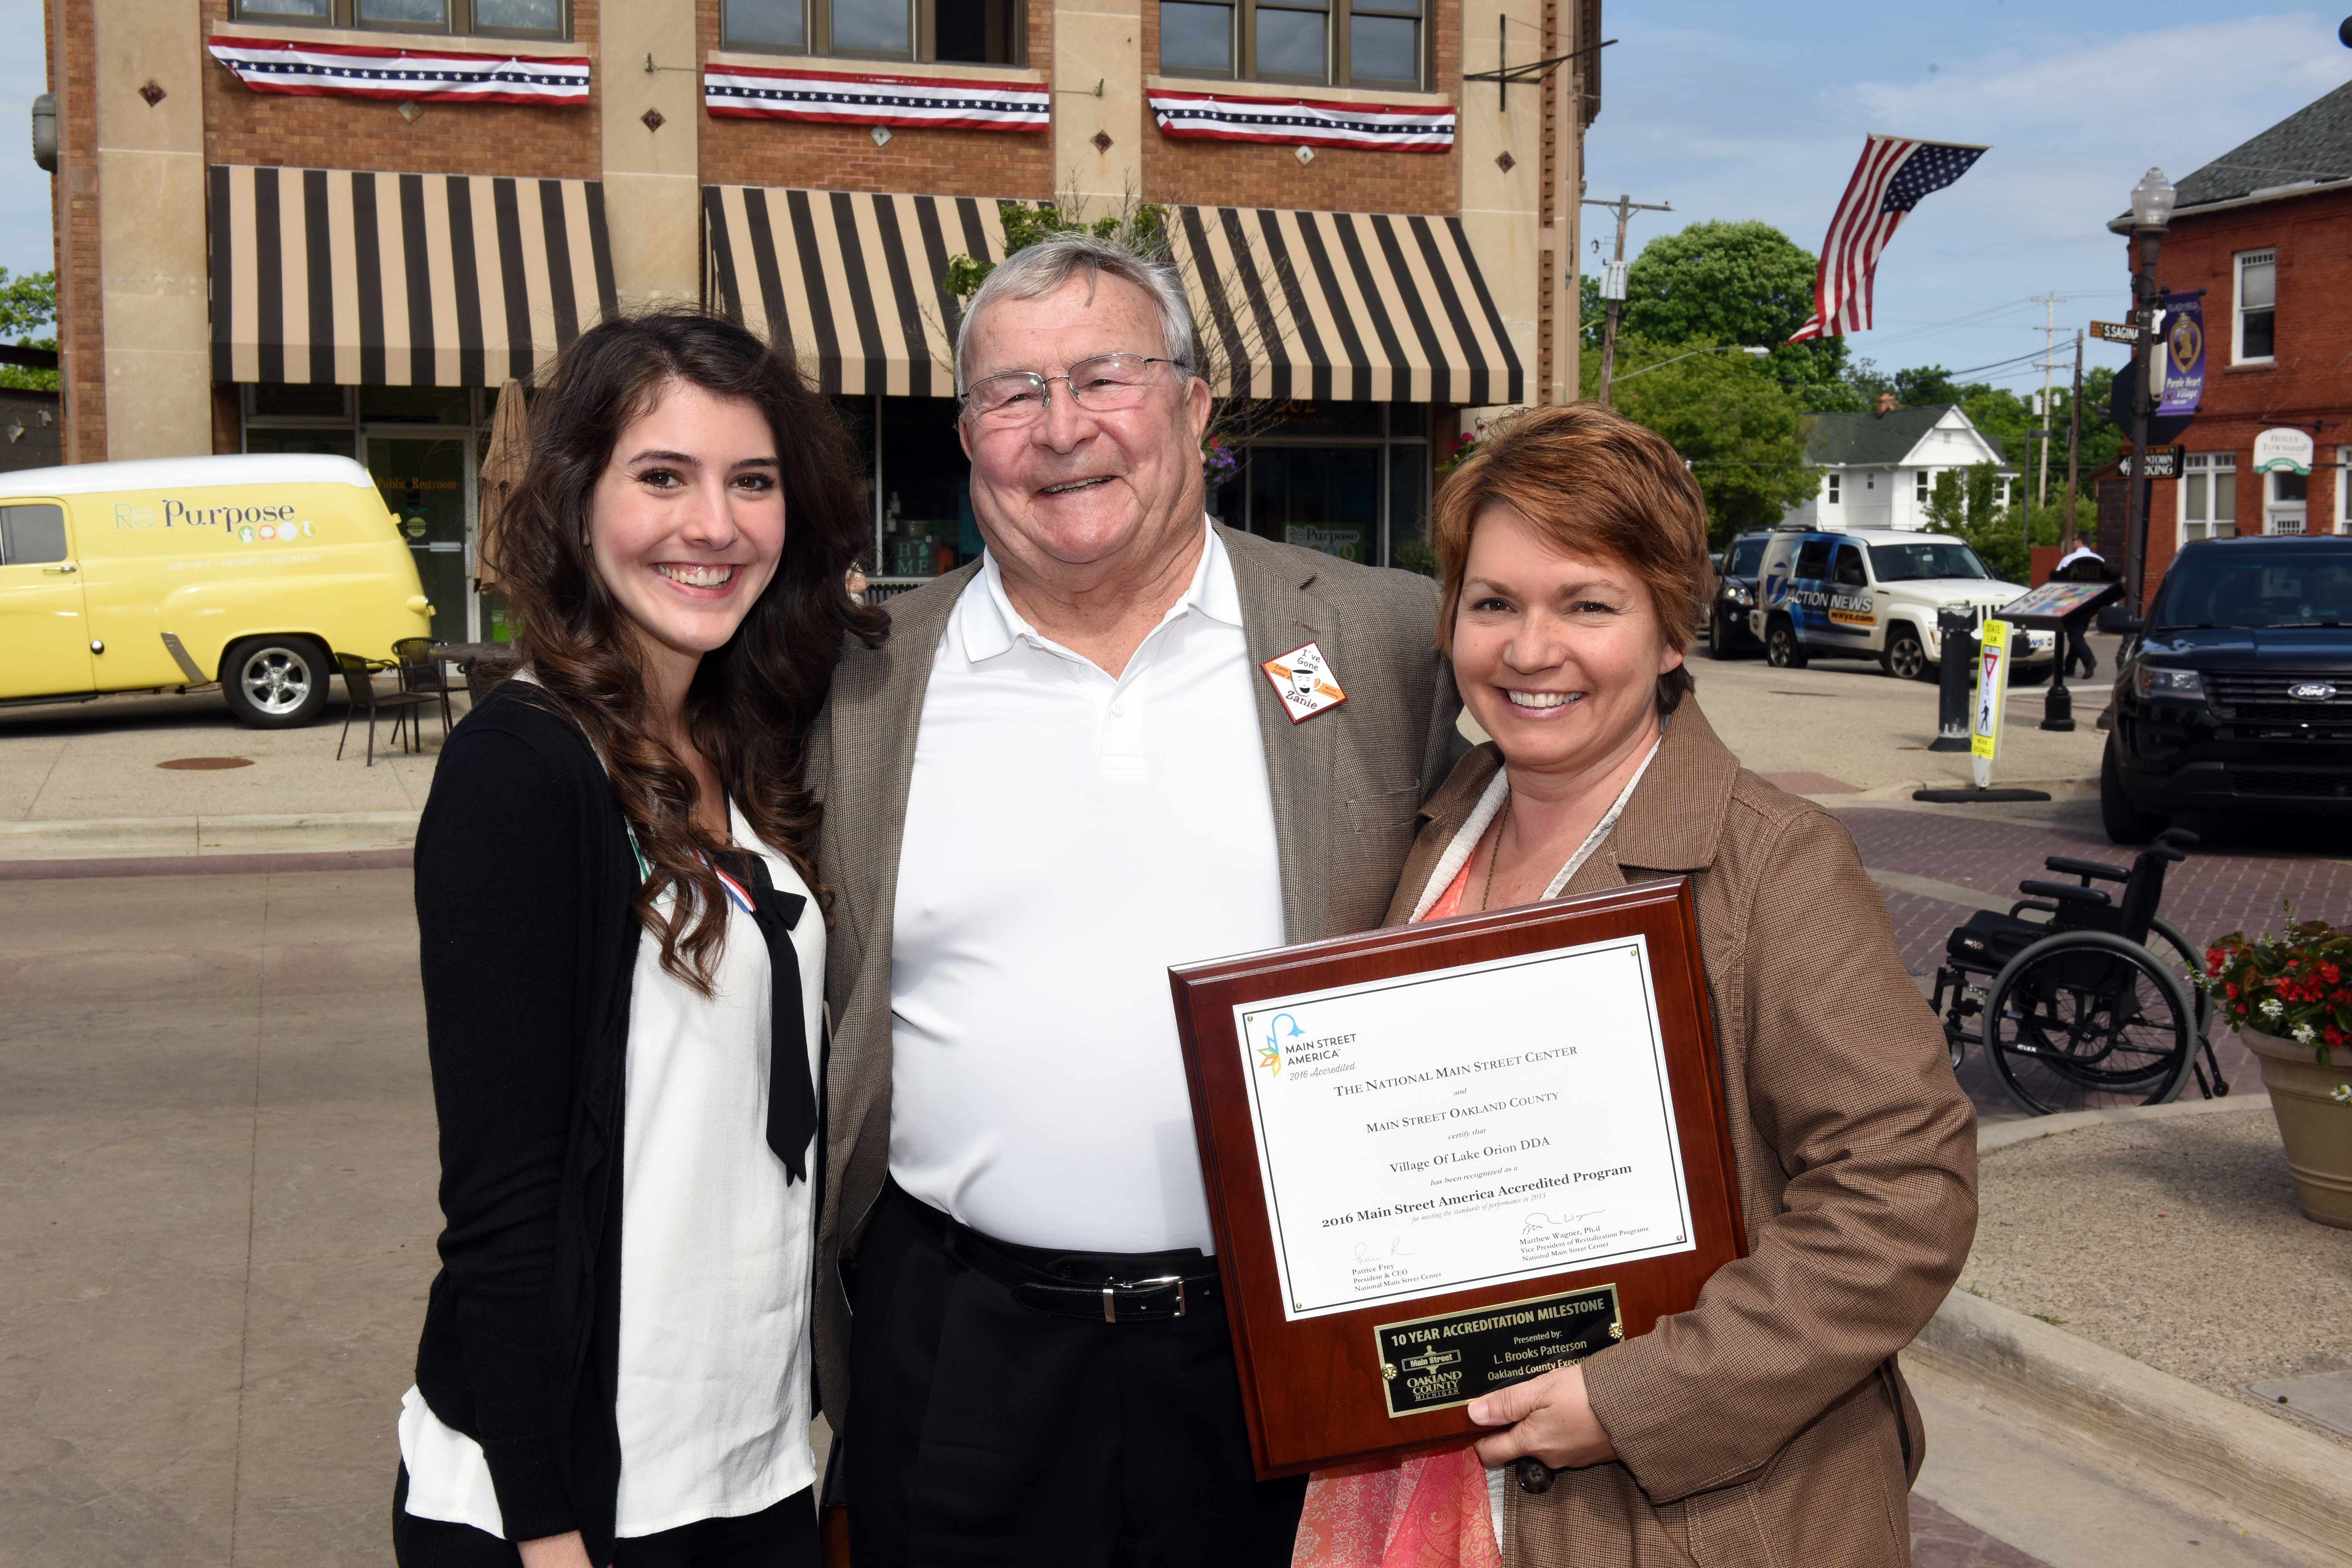 2016 National Main Street Accreditation – downtownlakeorion org